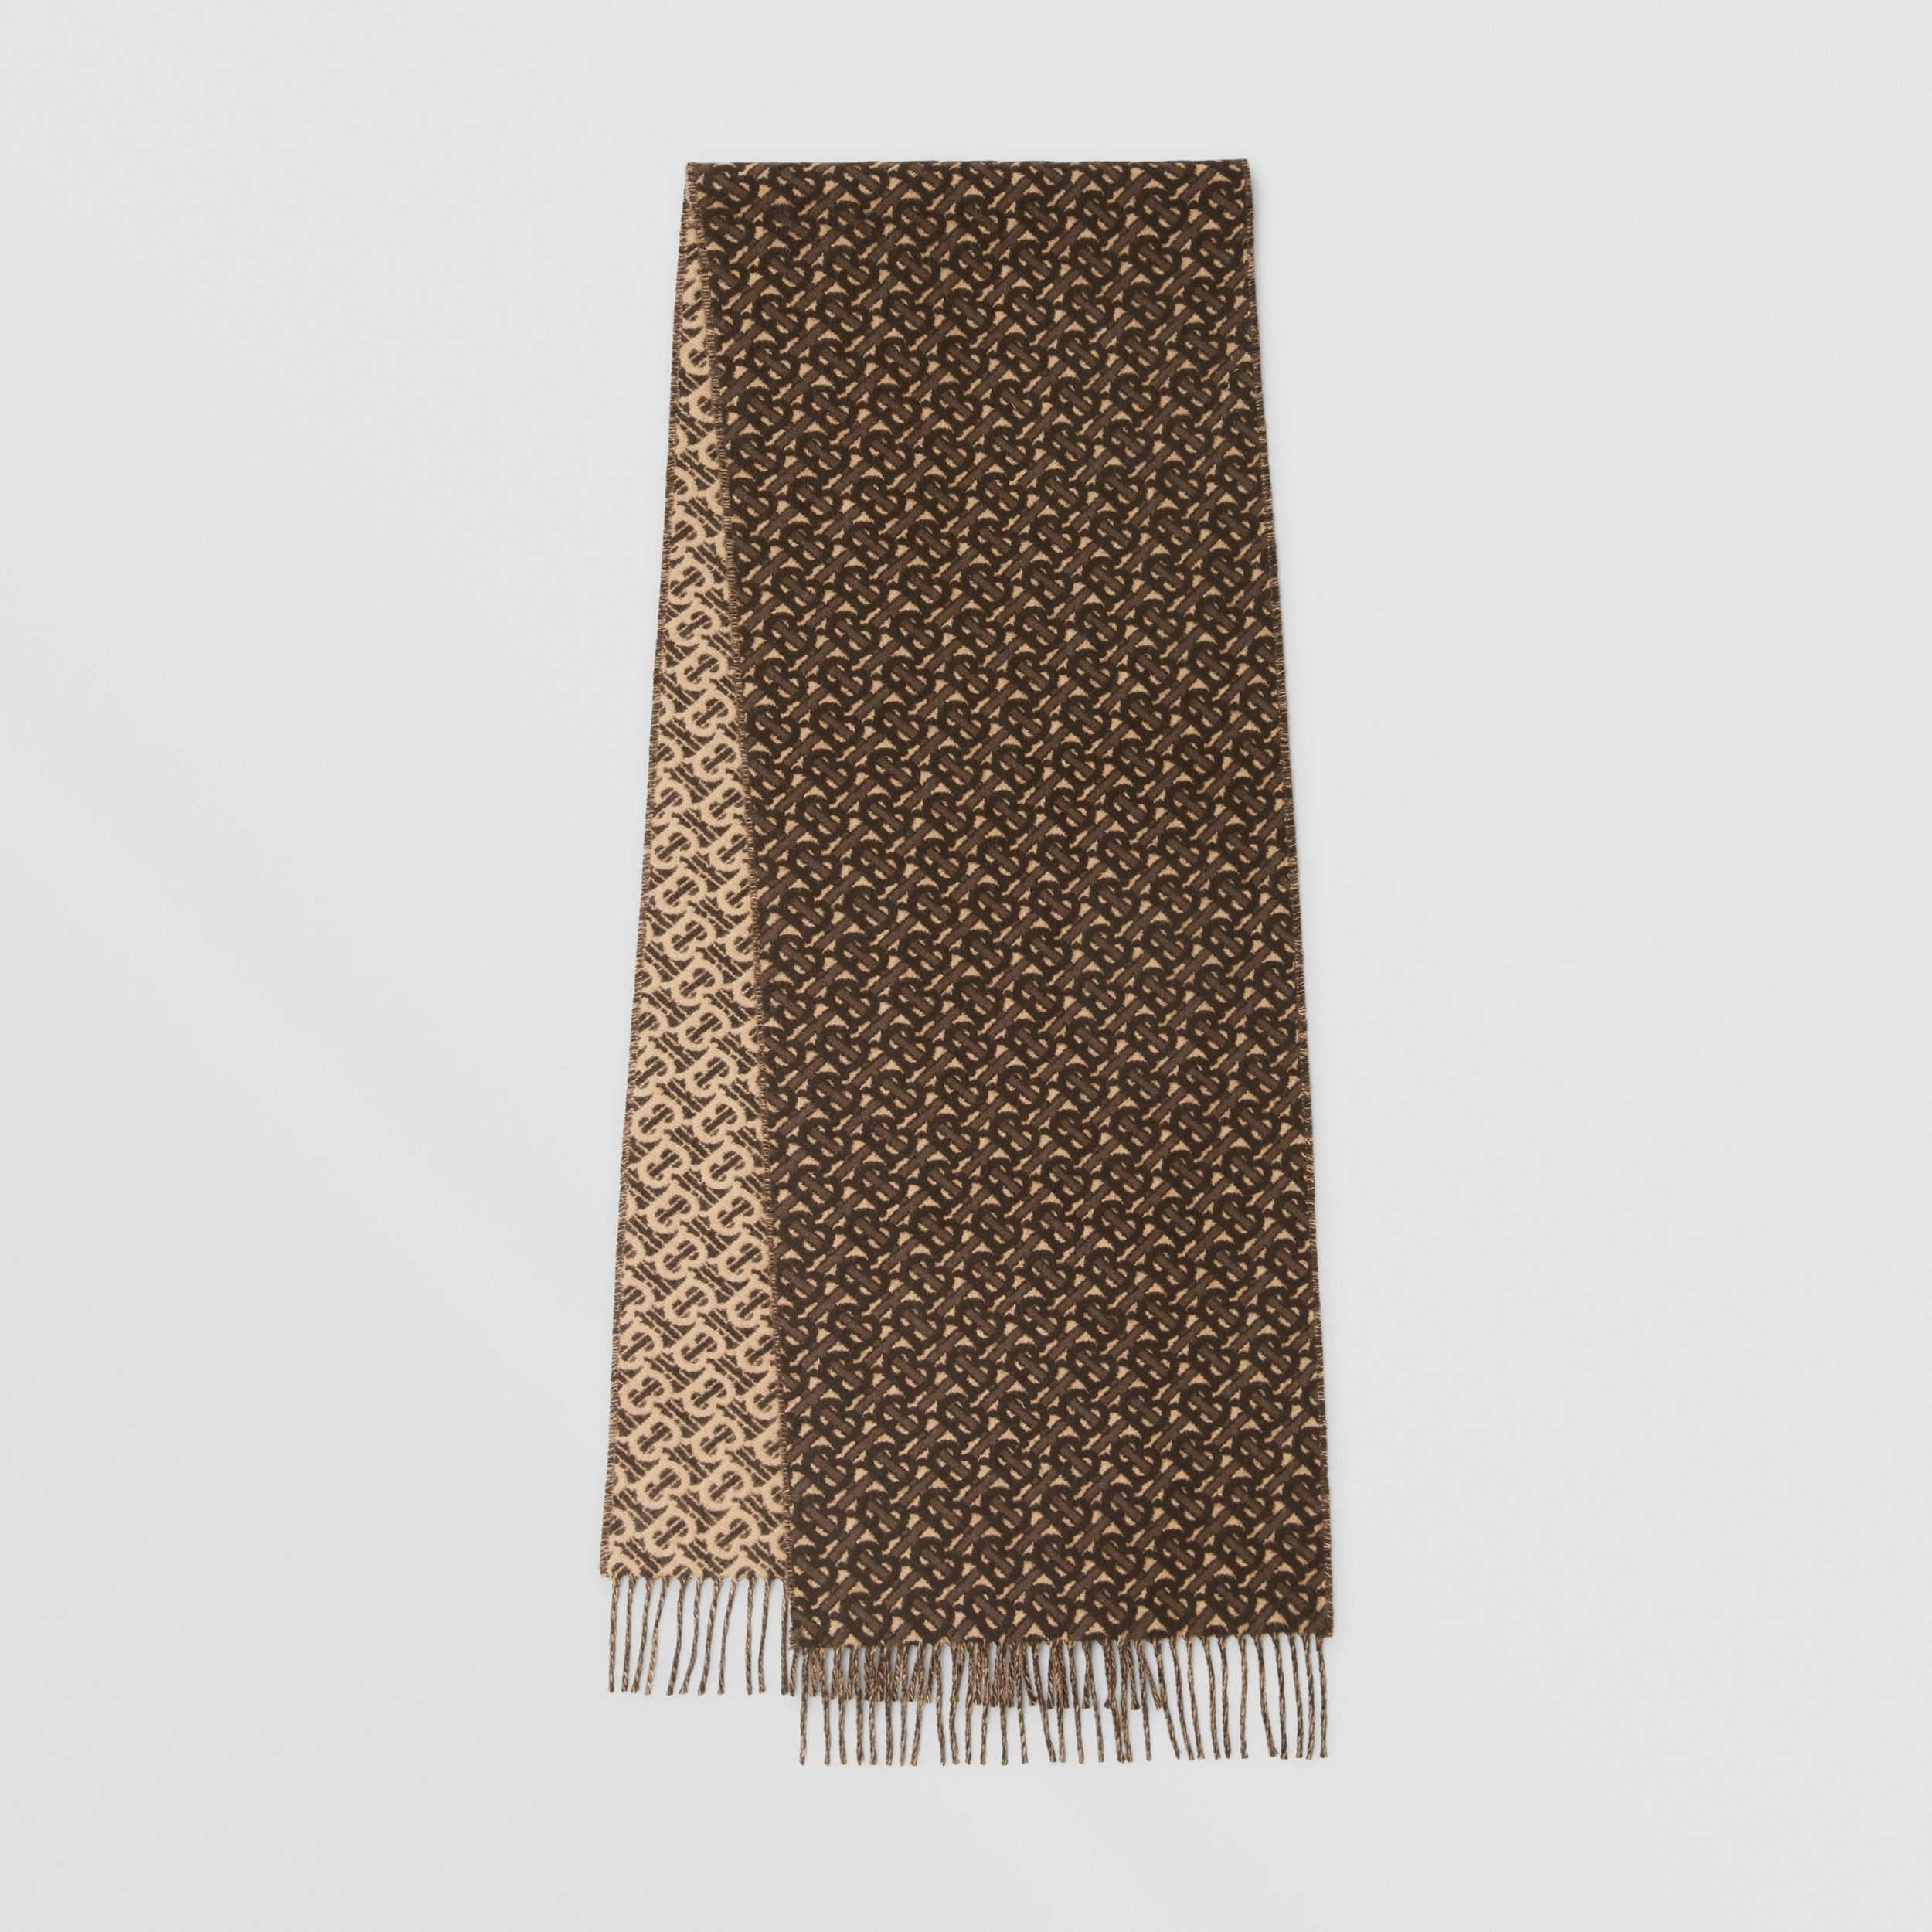 Monogram Cashmere Jacquard Scarf in Bridle Brown | Burberry - 1